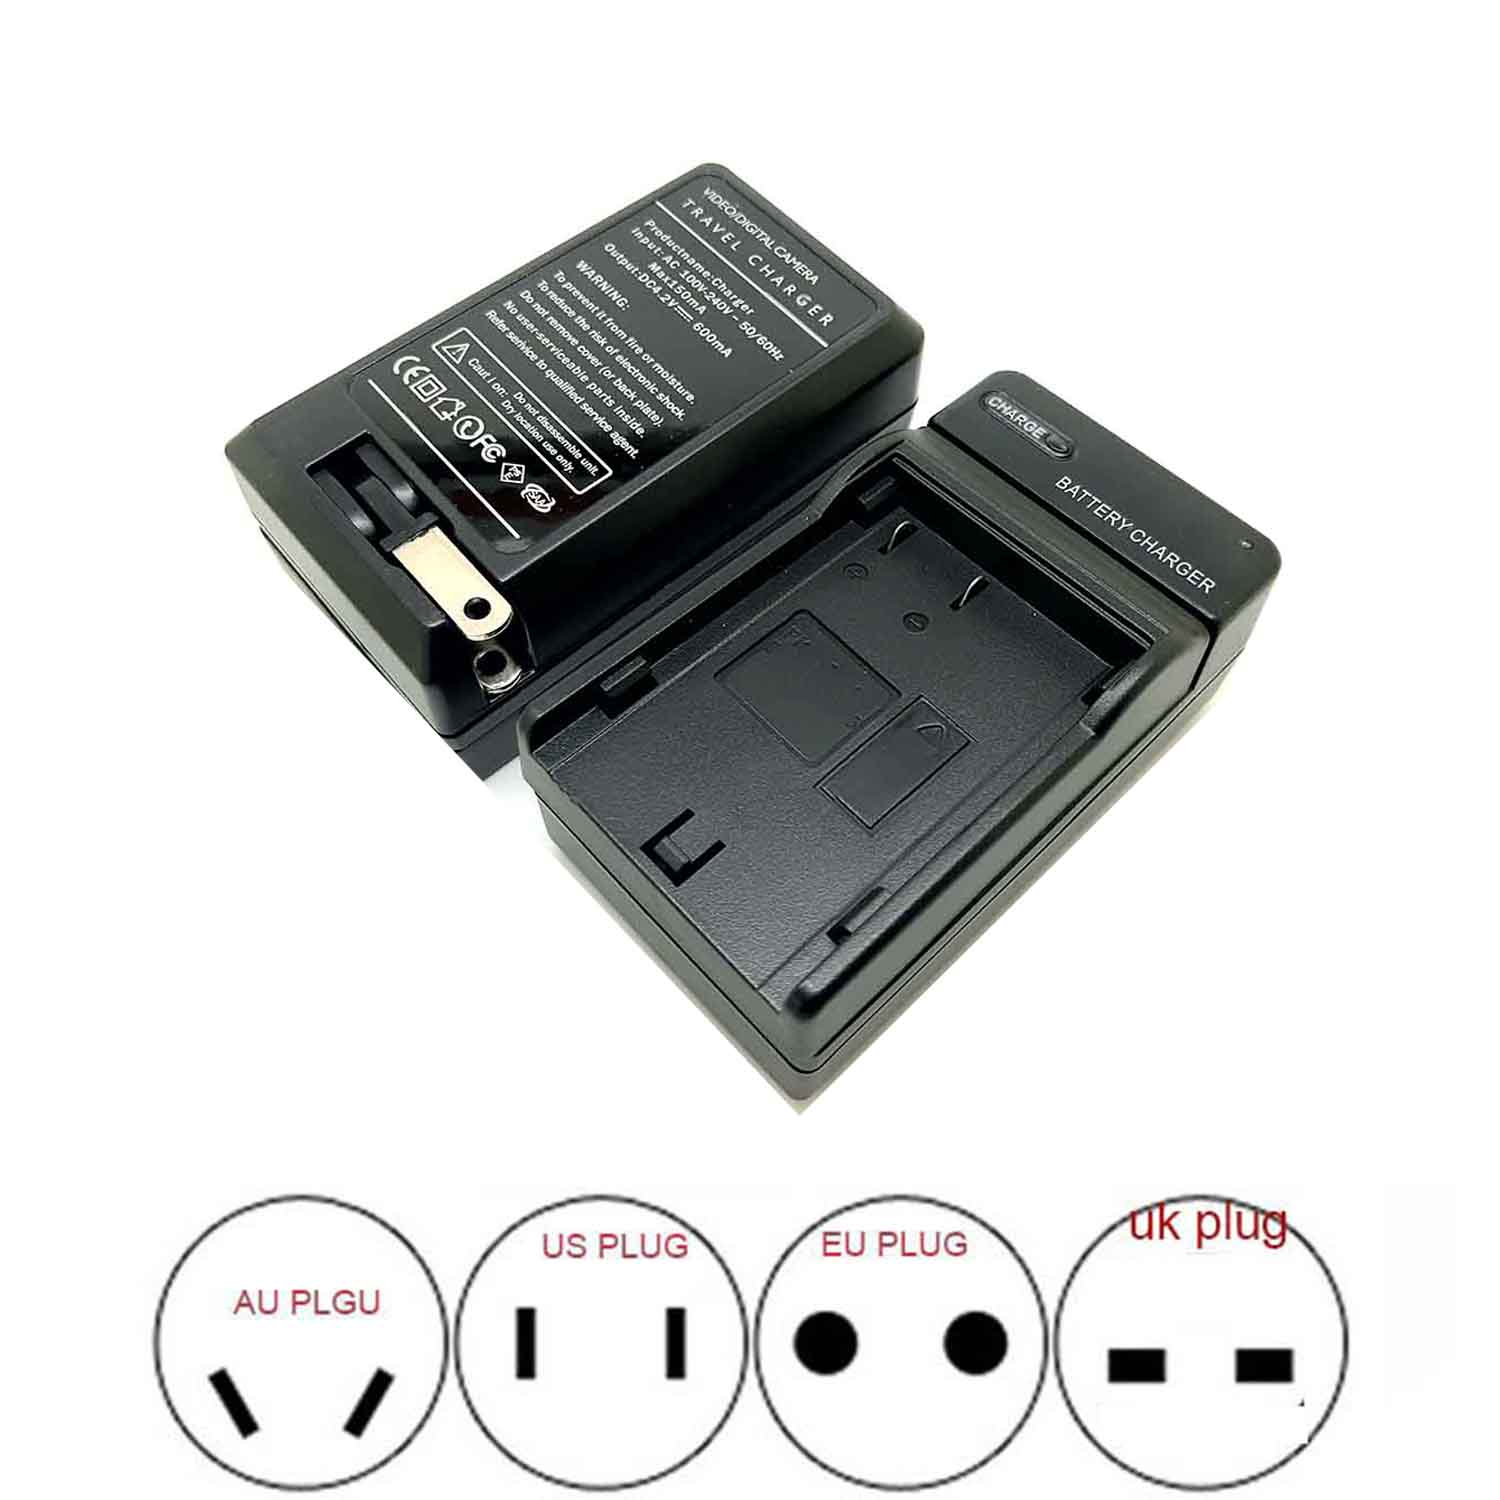 <font><b>Battery</b></font> Charger <font><b>NP80</b></font> for FUJIFILM FinePix 700Z, 2700, 2900Z, 4800, 4800 ZOOM, 4800Z, 4900, 4900 ZOOM image